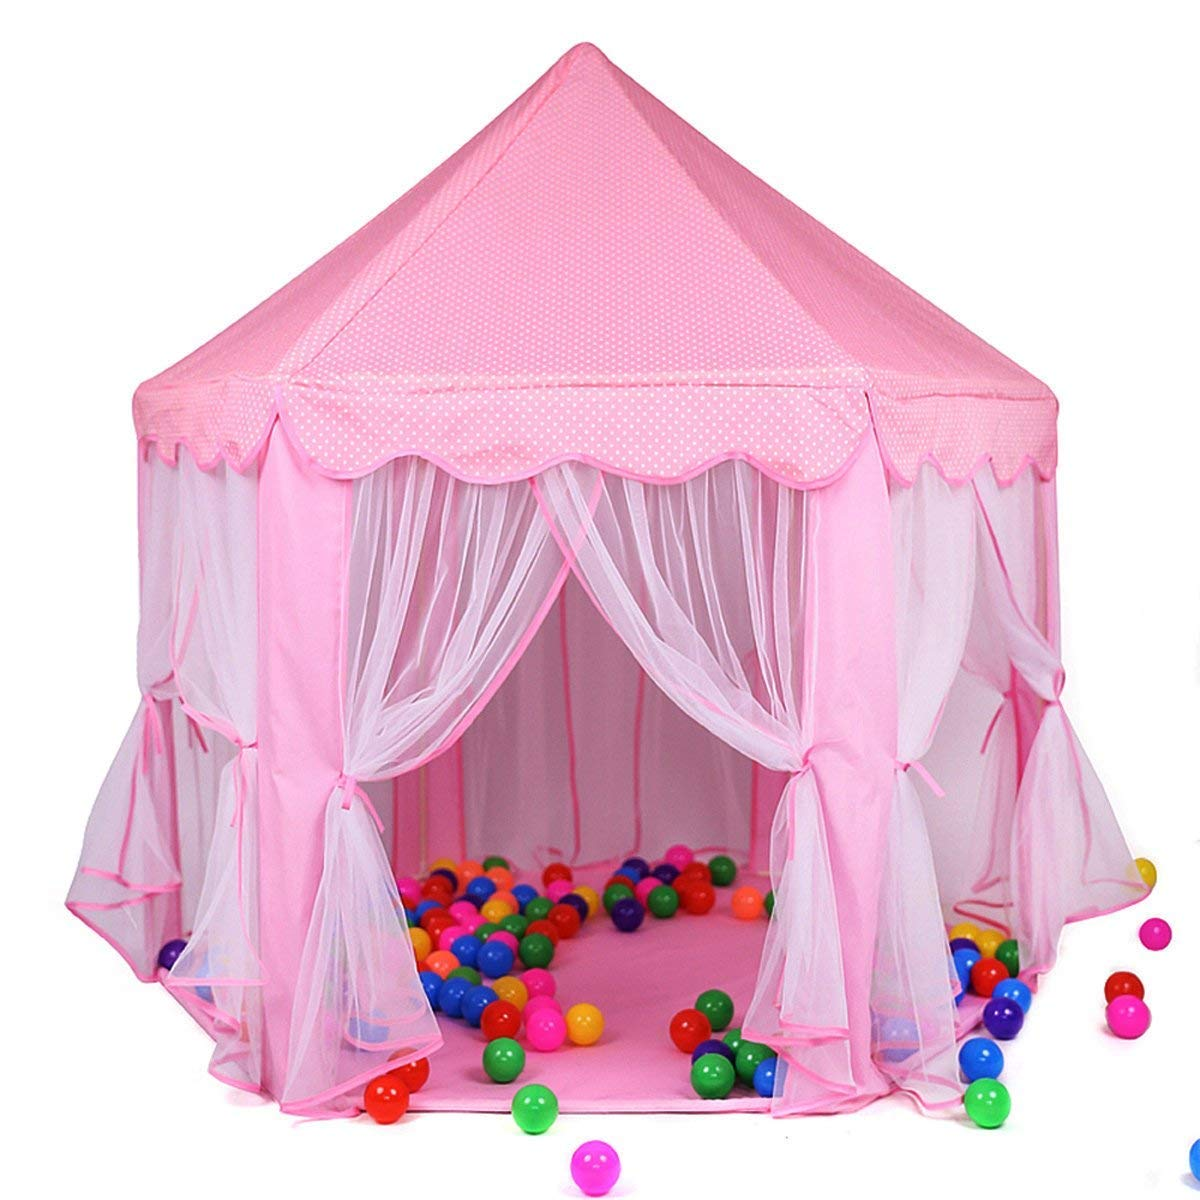 Toyshine Big Princess Castle Tent House For Kids, Assorted